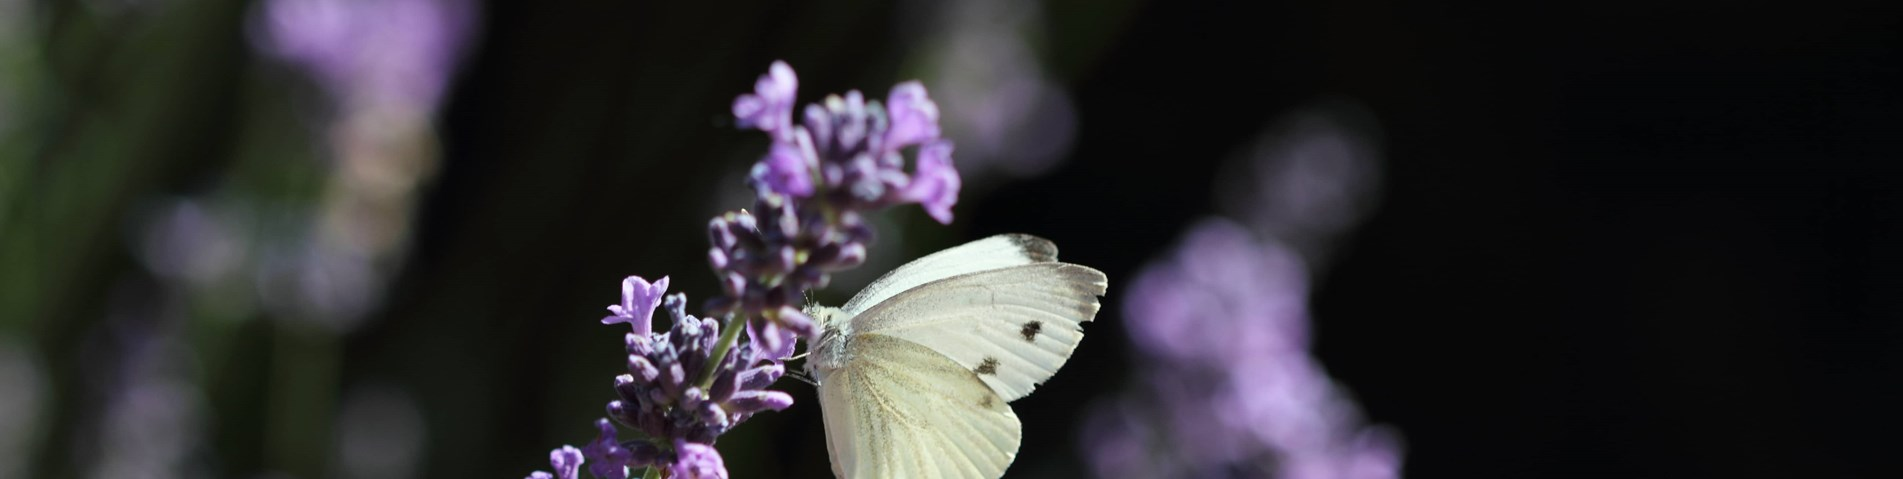 Butterfly on lavender.jpg